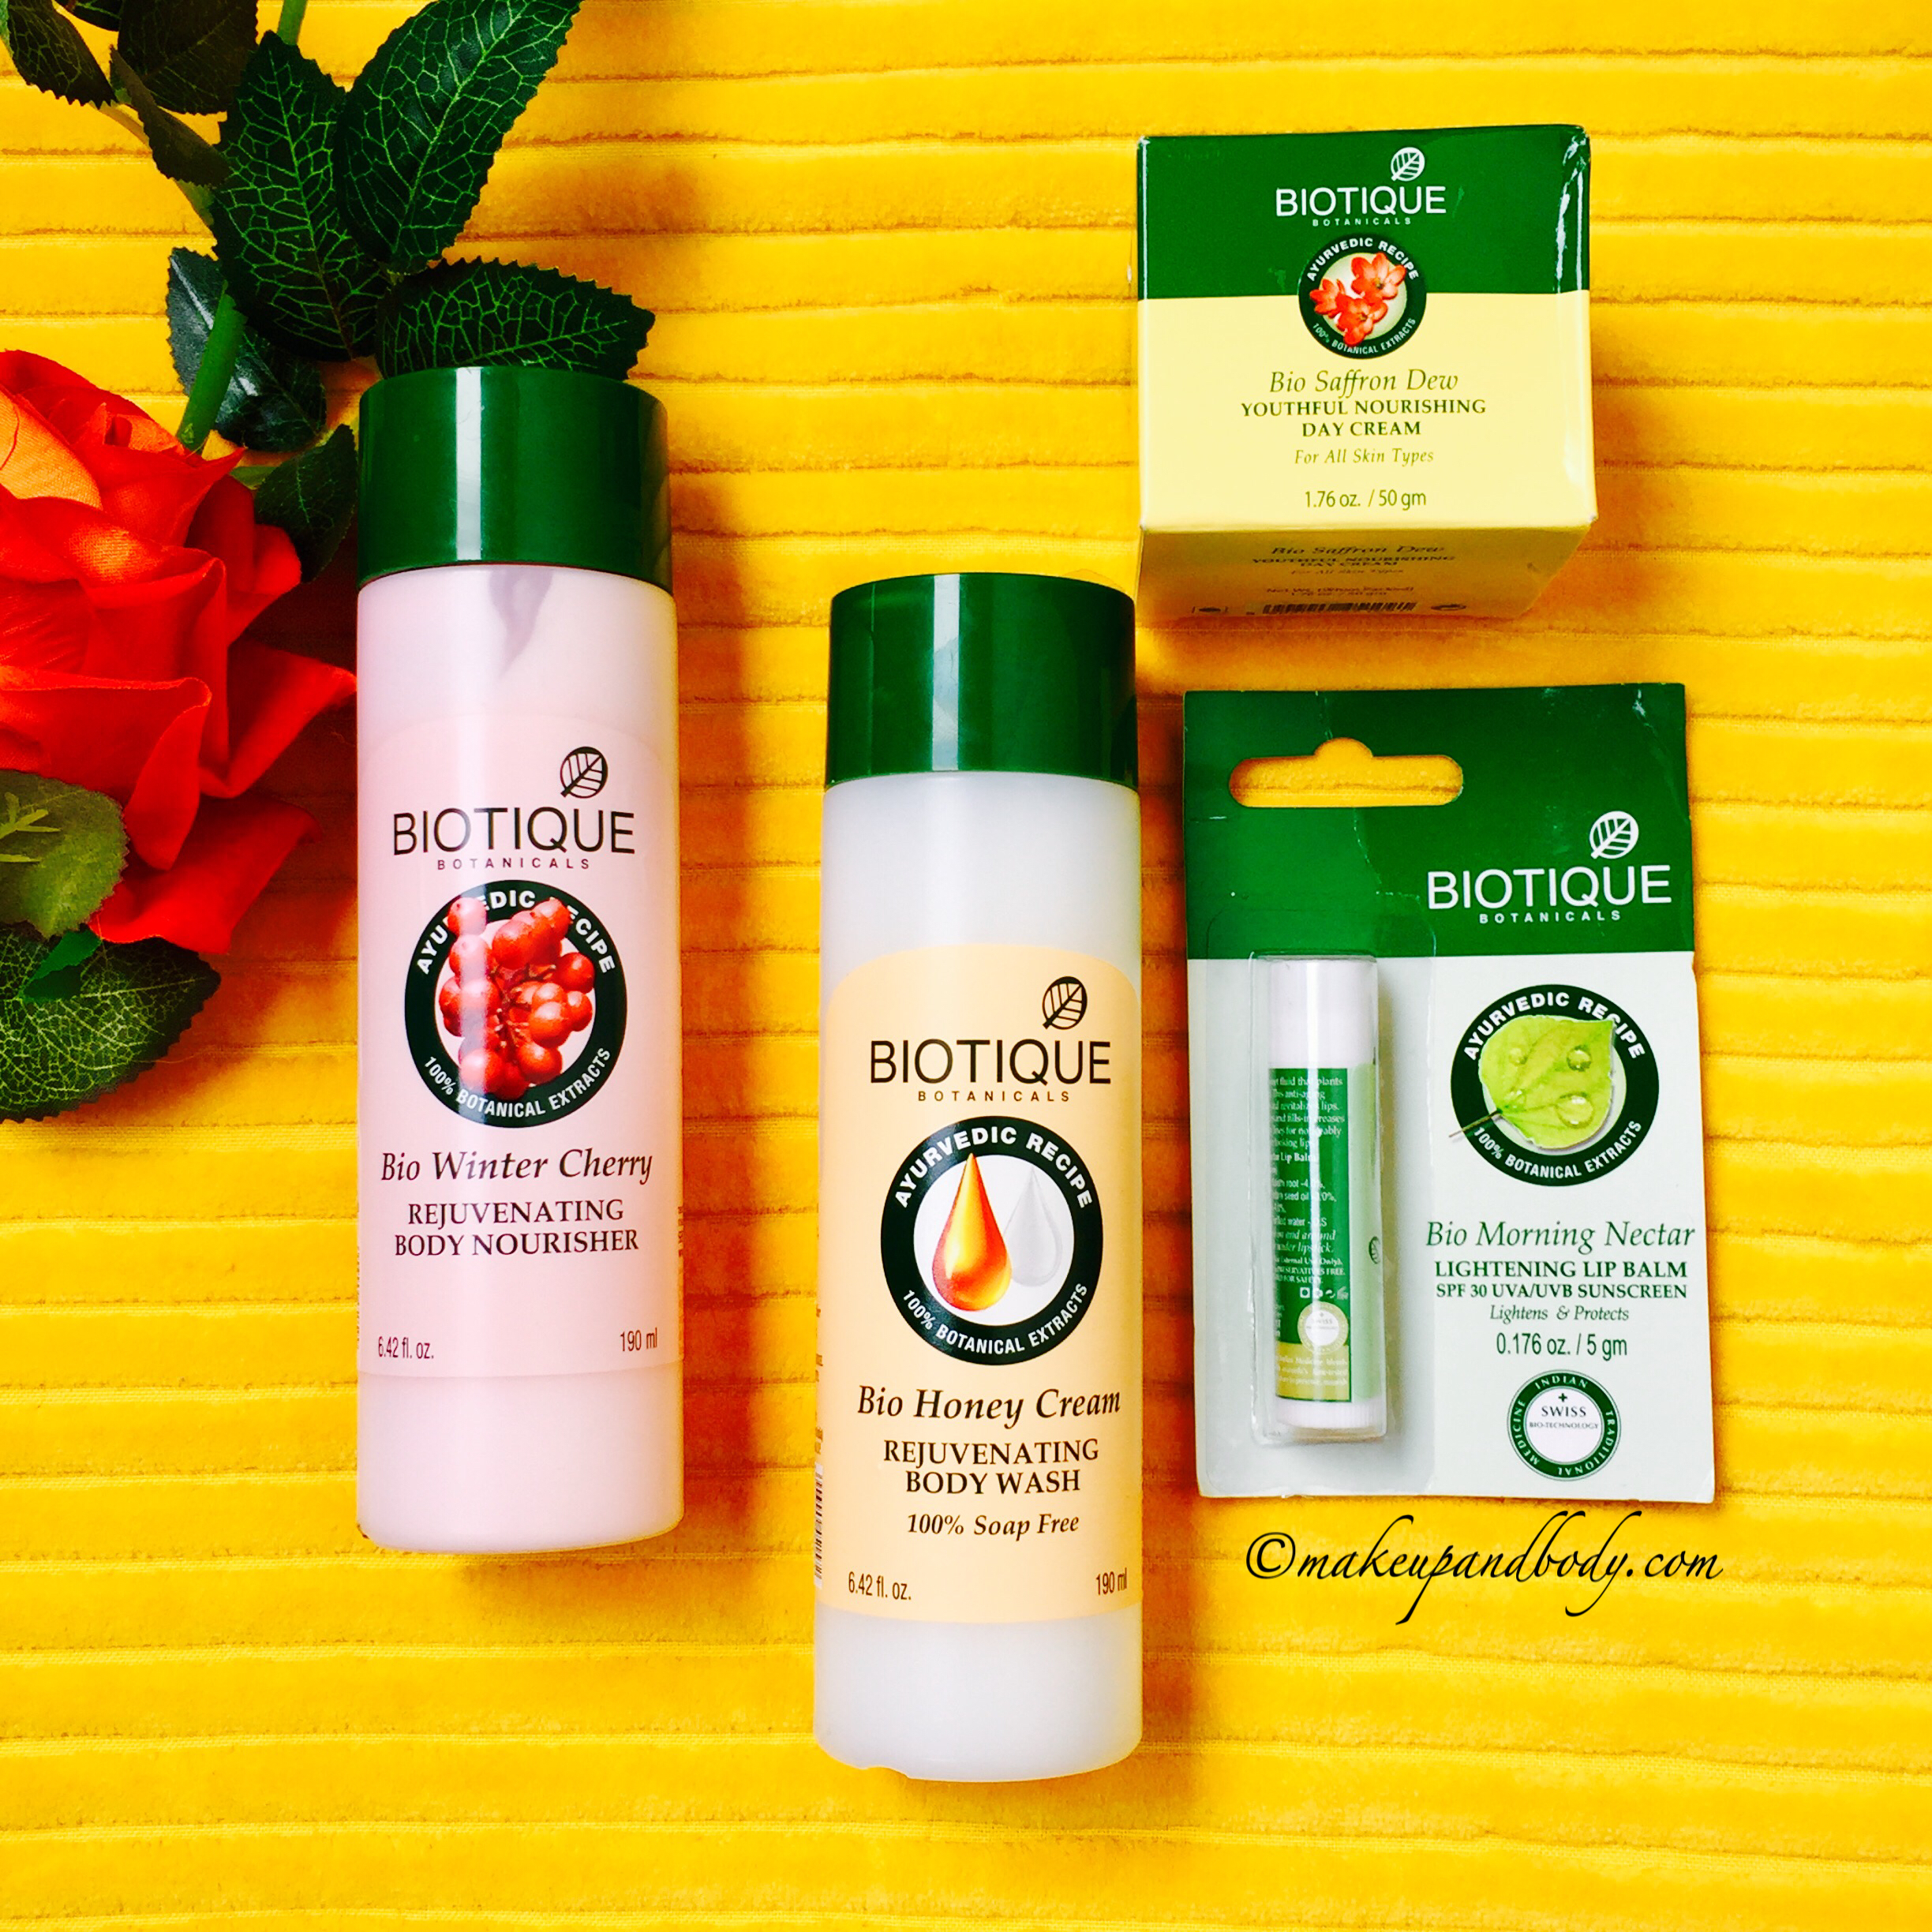 Pamper your skin with Biotique this winter